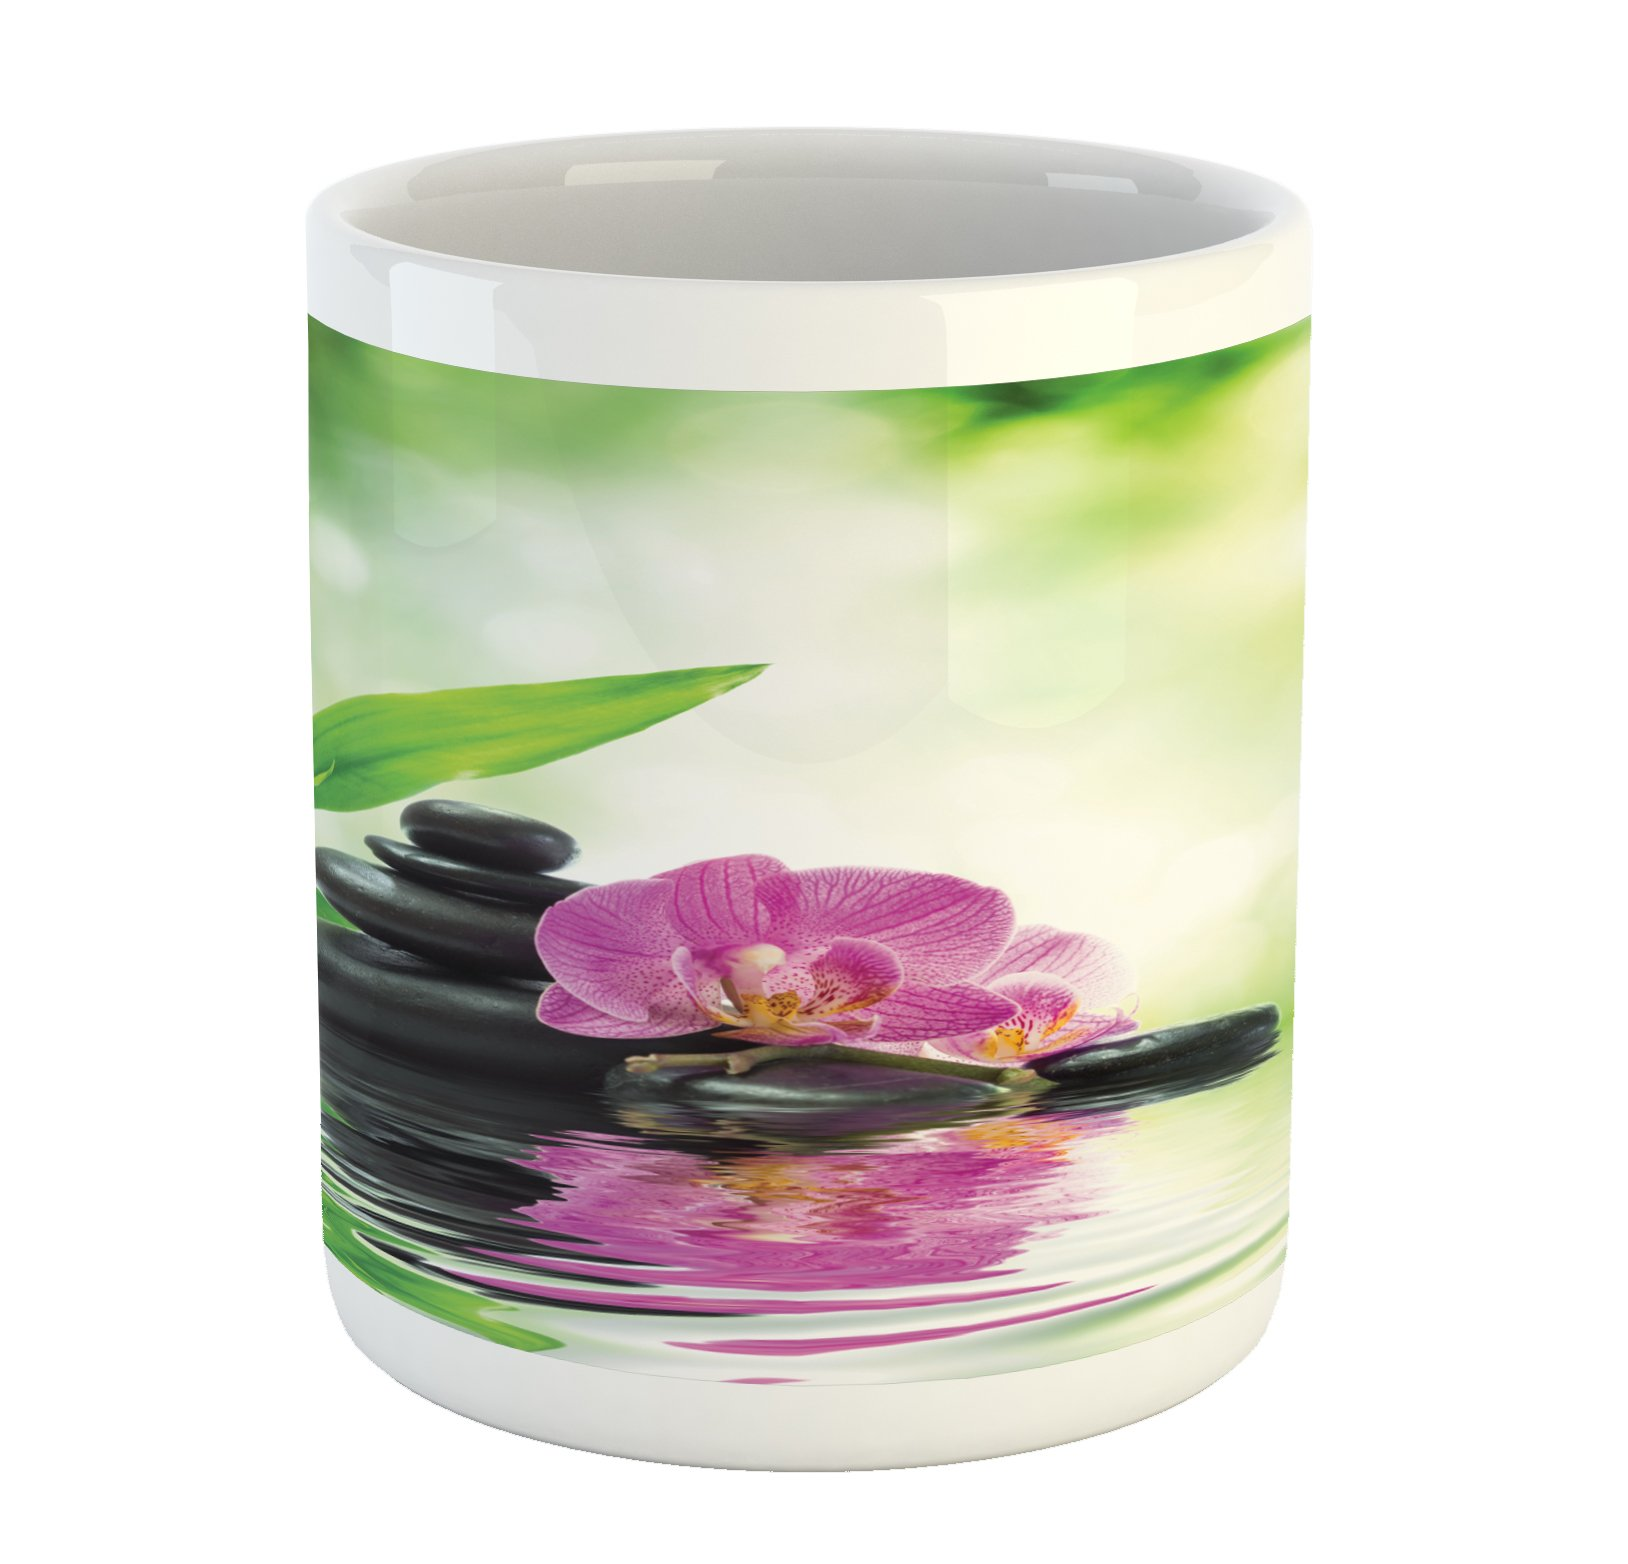 Ambesonne Spa Mug, Orchids and Rocks in the Mineral Rich Spring Water Spiritual Deep Treatment Cure, Printed Ceramic Coffee Mug Water Tea Drinks Cup, Green Black Pink